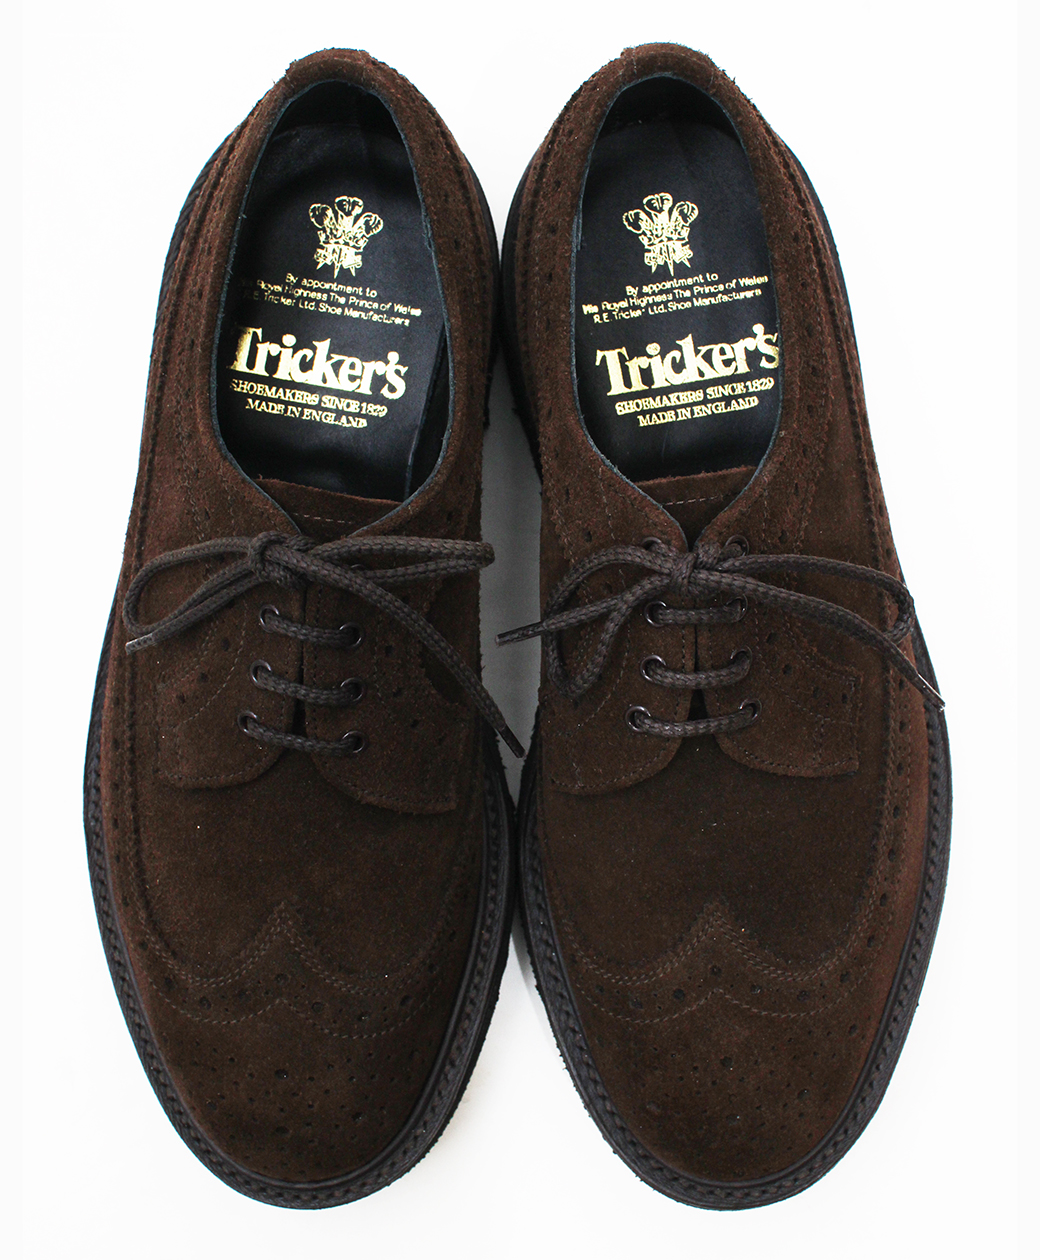 Tricker's M7306 Chocolate Repello Suede Golosh Brogues(Brown)